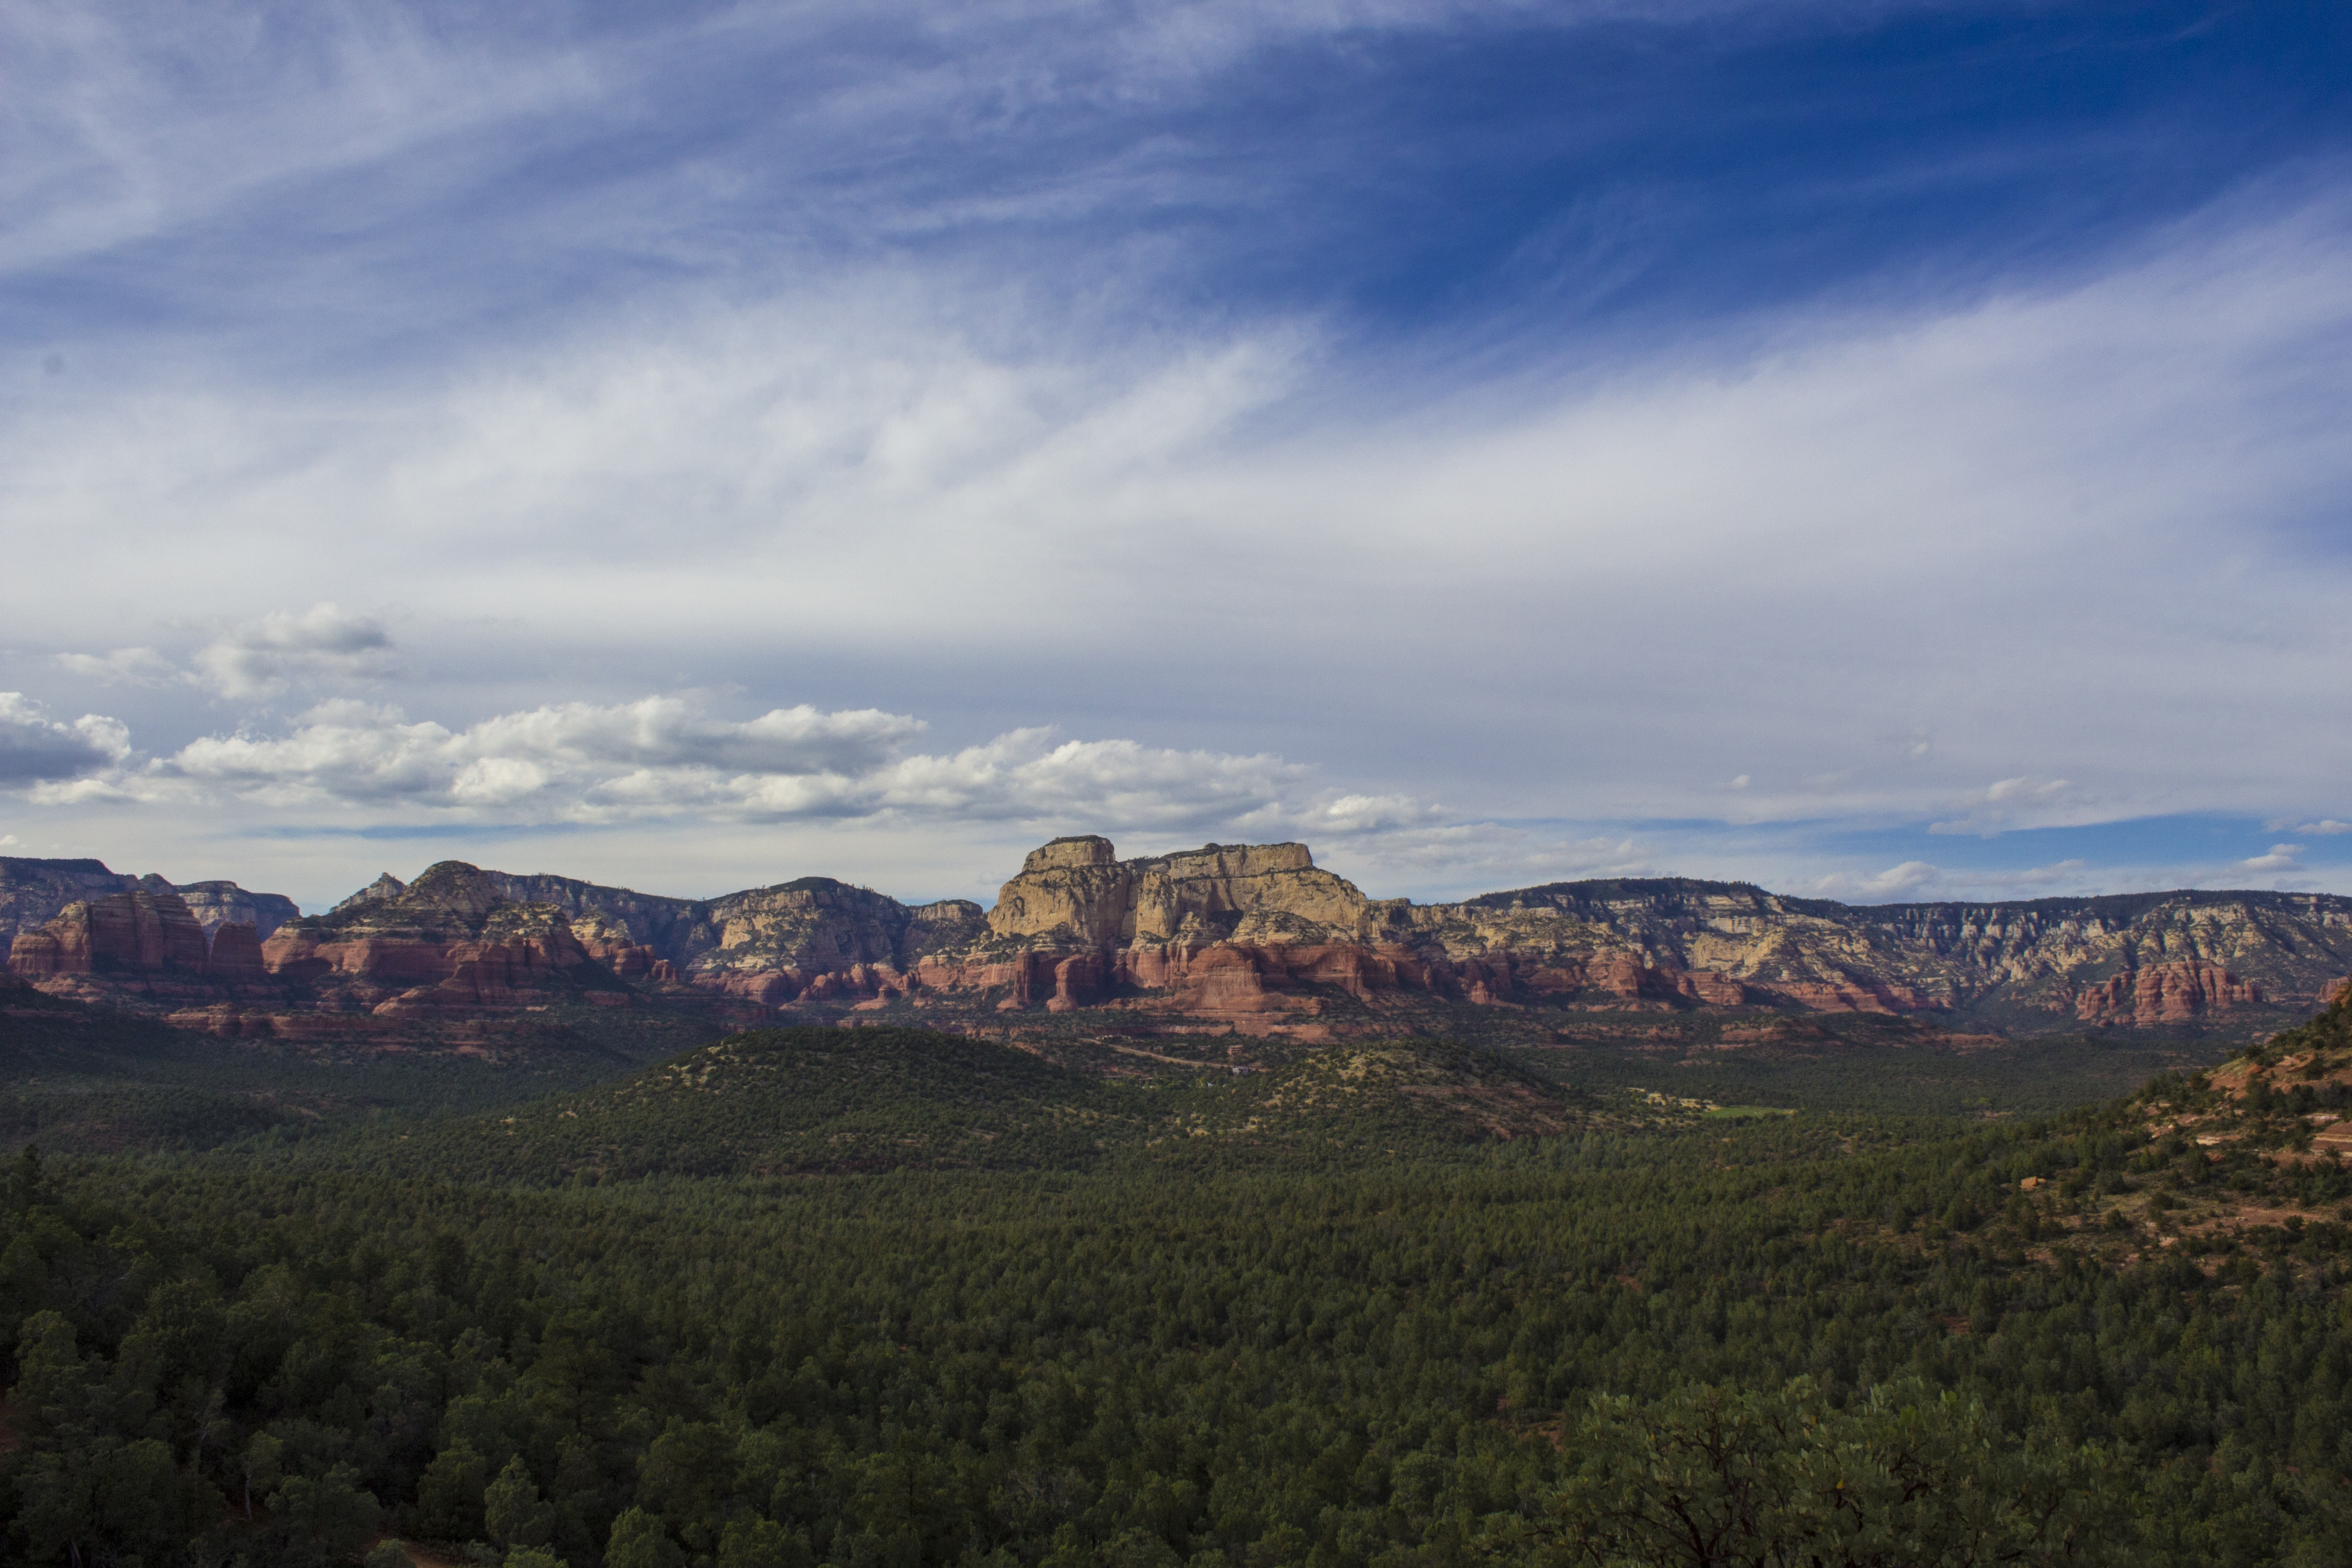 Red rock formations near a green forest in Sedona